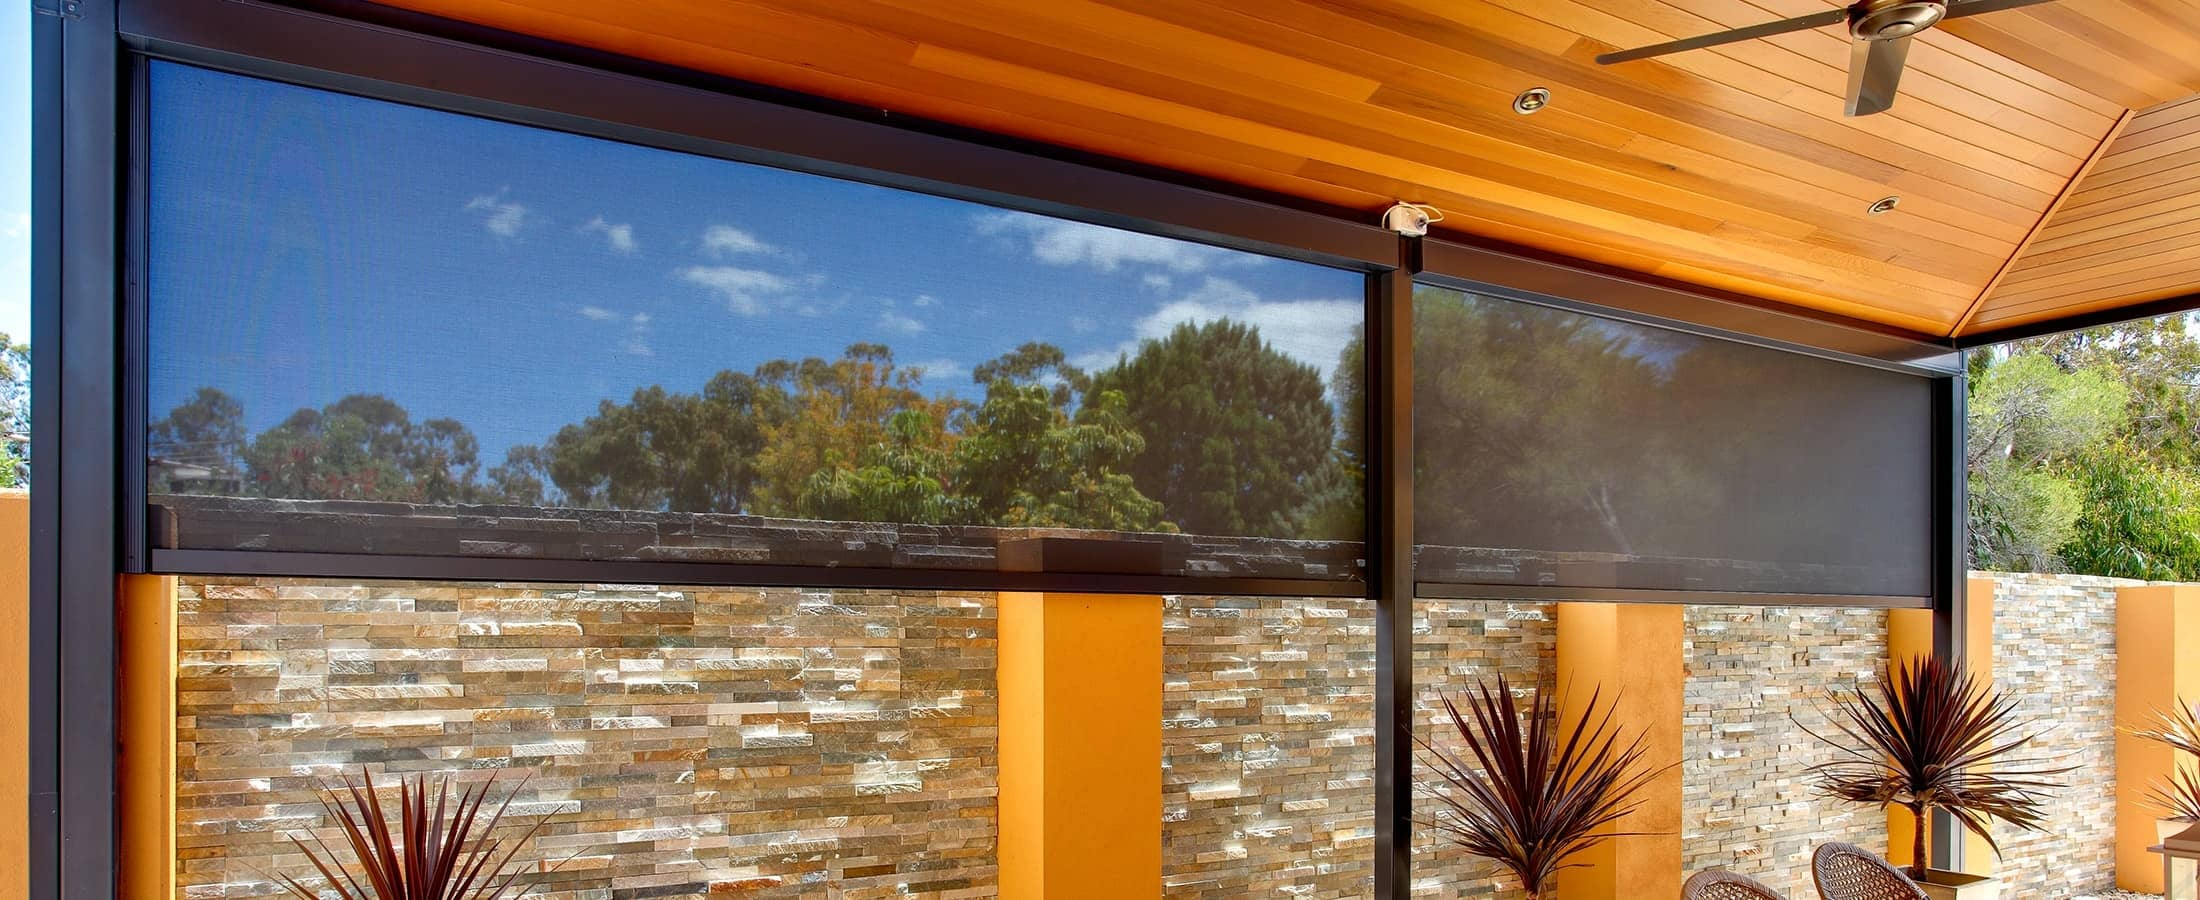 Patio Blinds Cafe Blinds Model ABC Blinds Best Range - Blinds patio